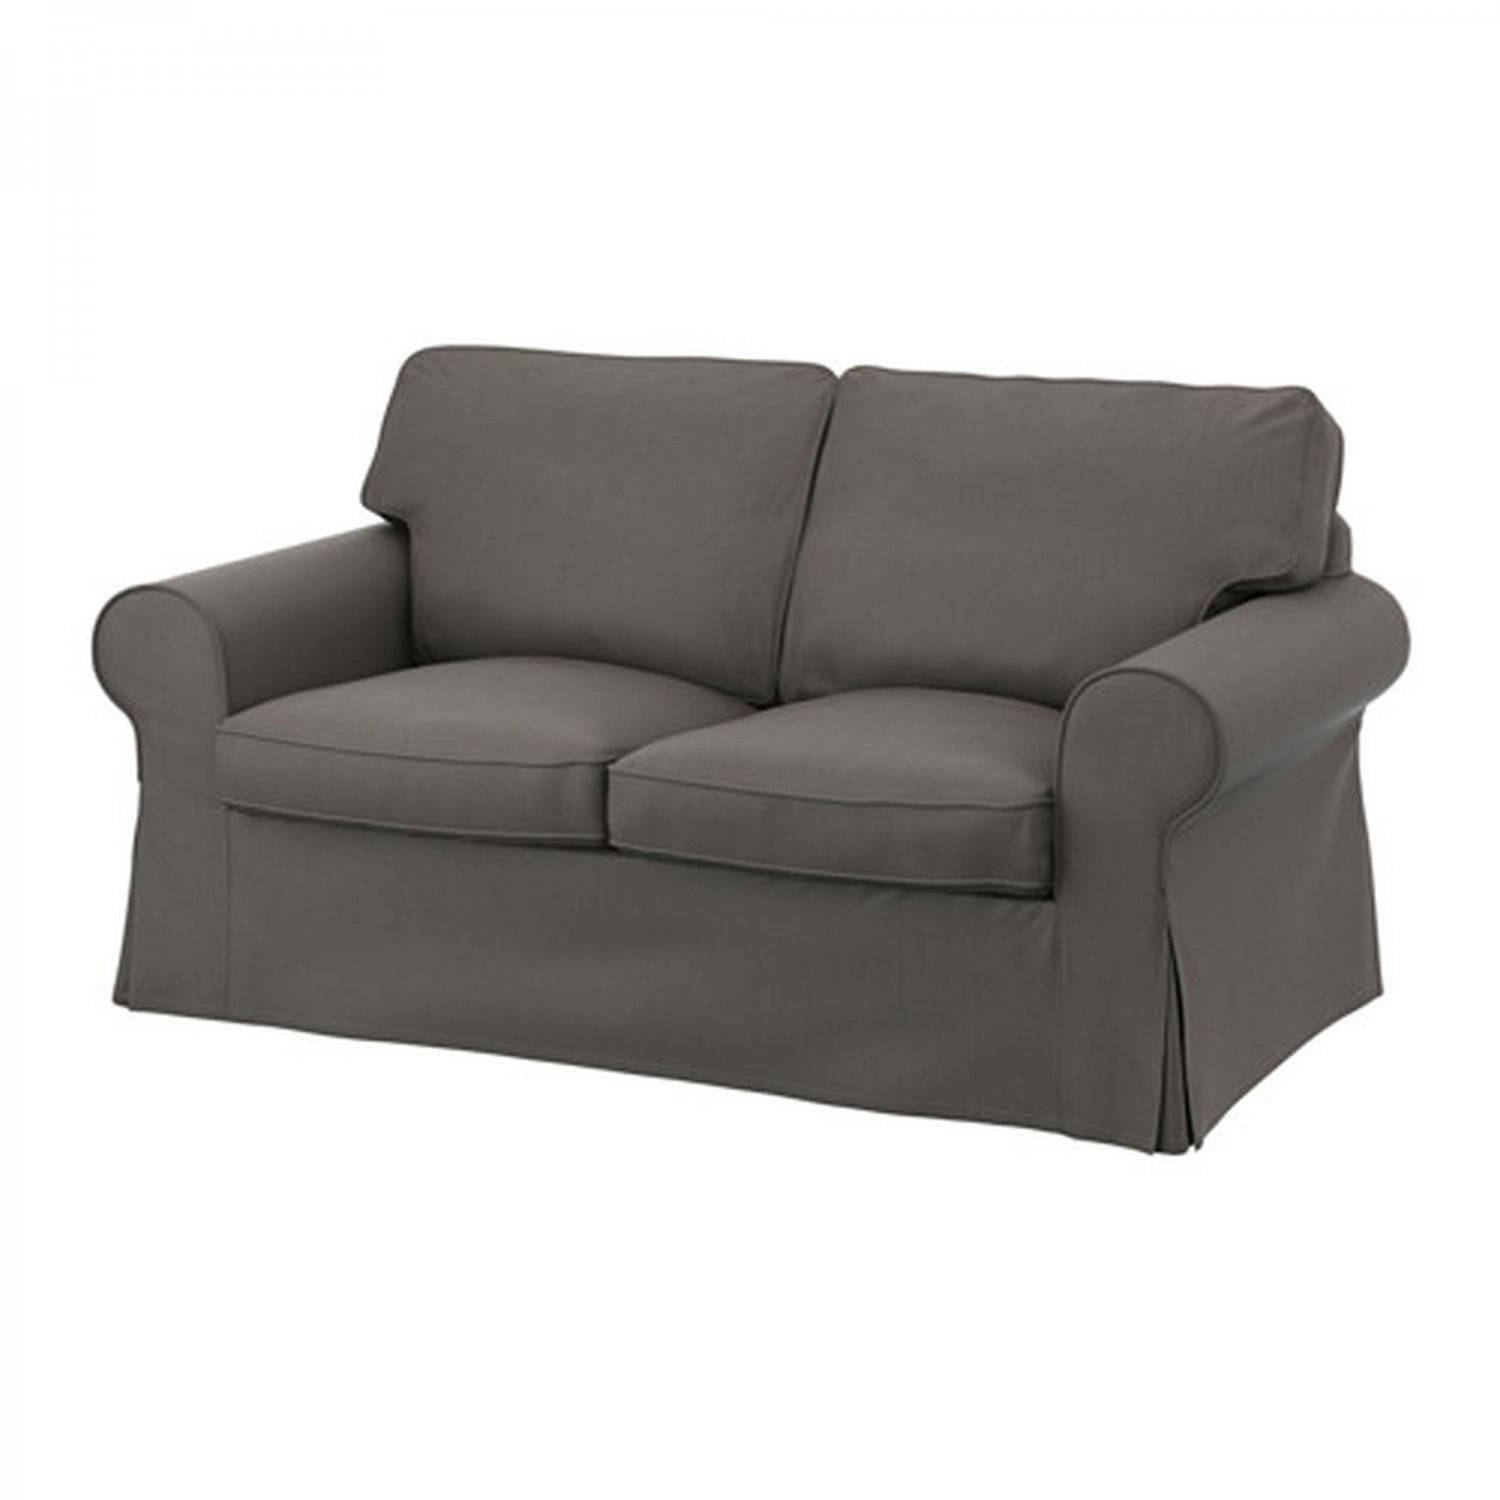 Ikea ektorp 2 seat sofa cover loveseat slipcover nordvalla gray grey Couch and loveseat covers